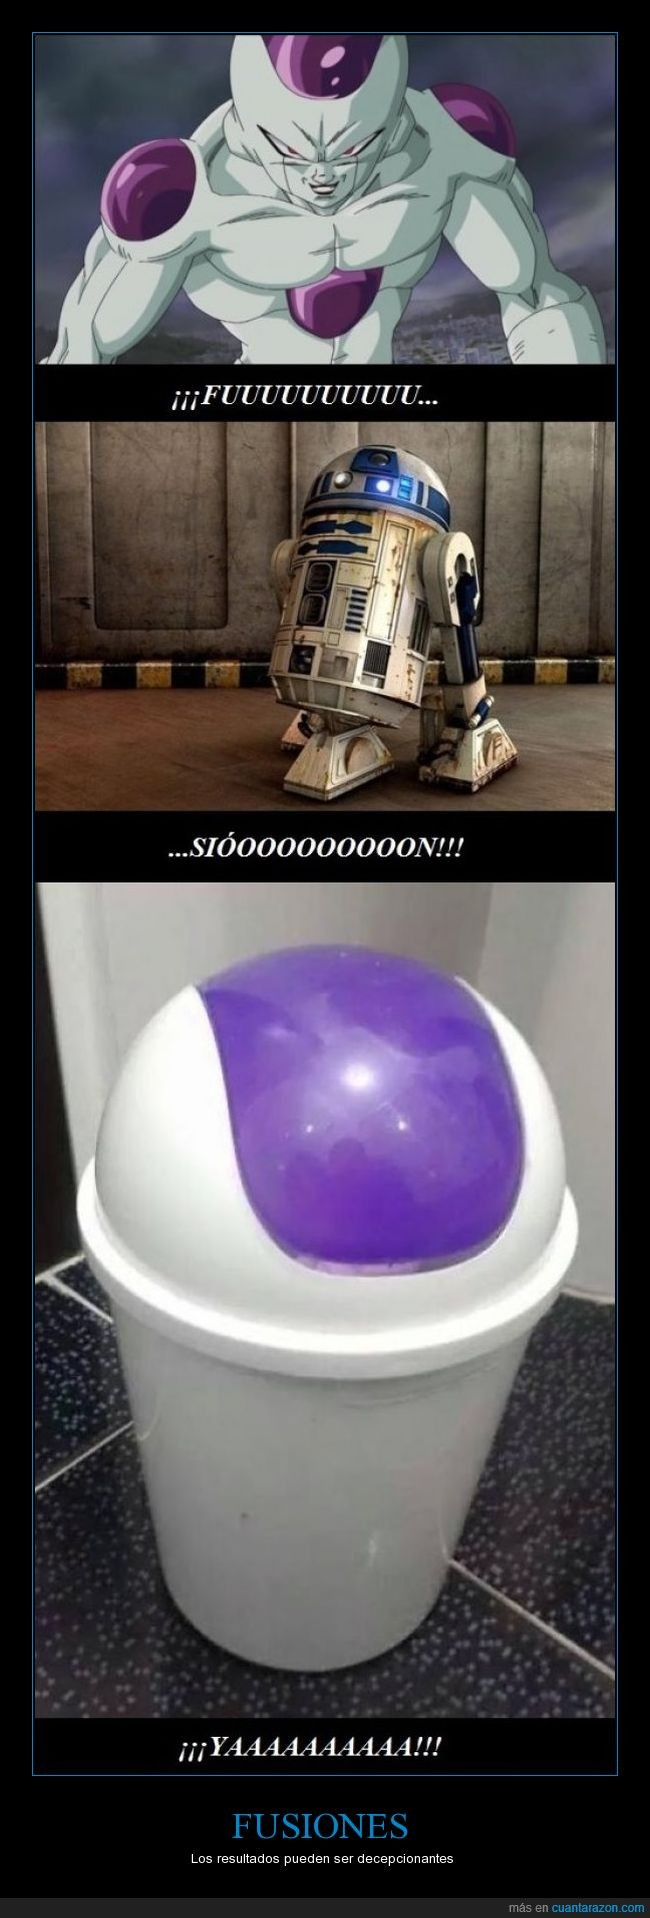 cubo de basura,dragon ball,freezer,fusion,humor,r2d2,star wars